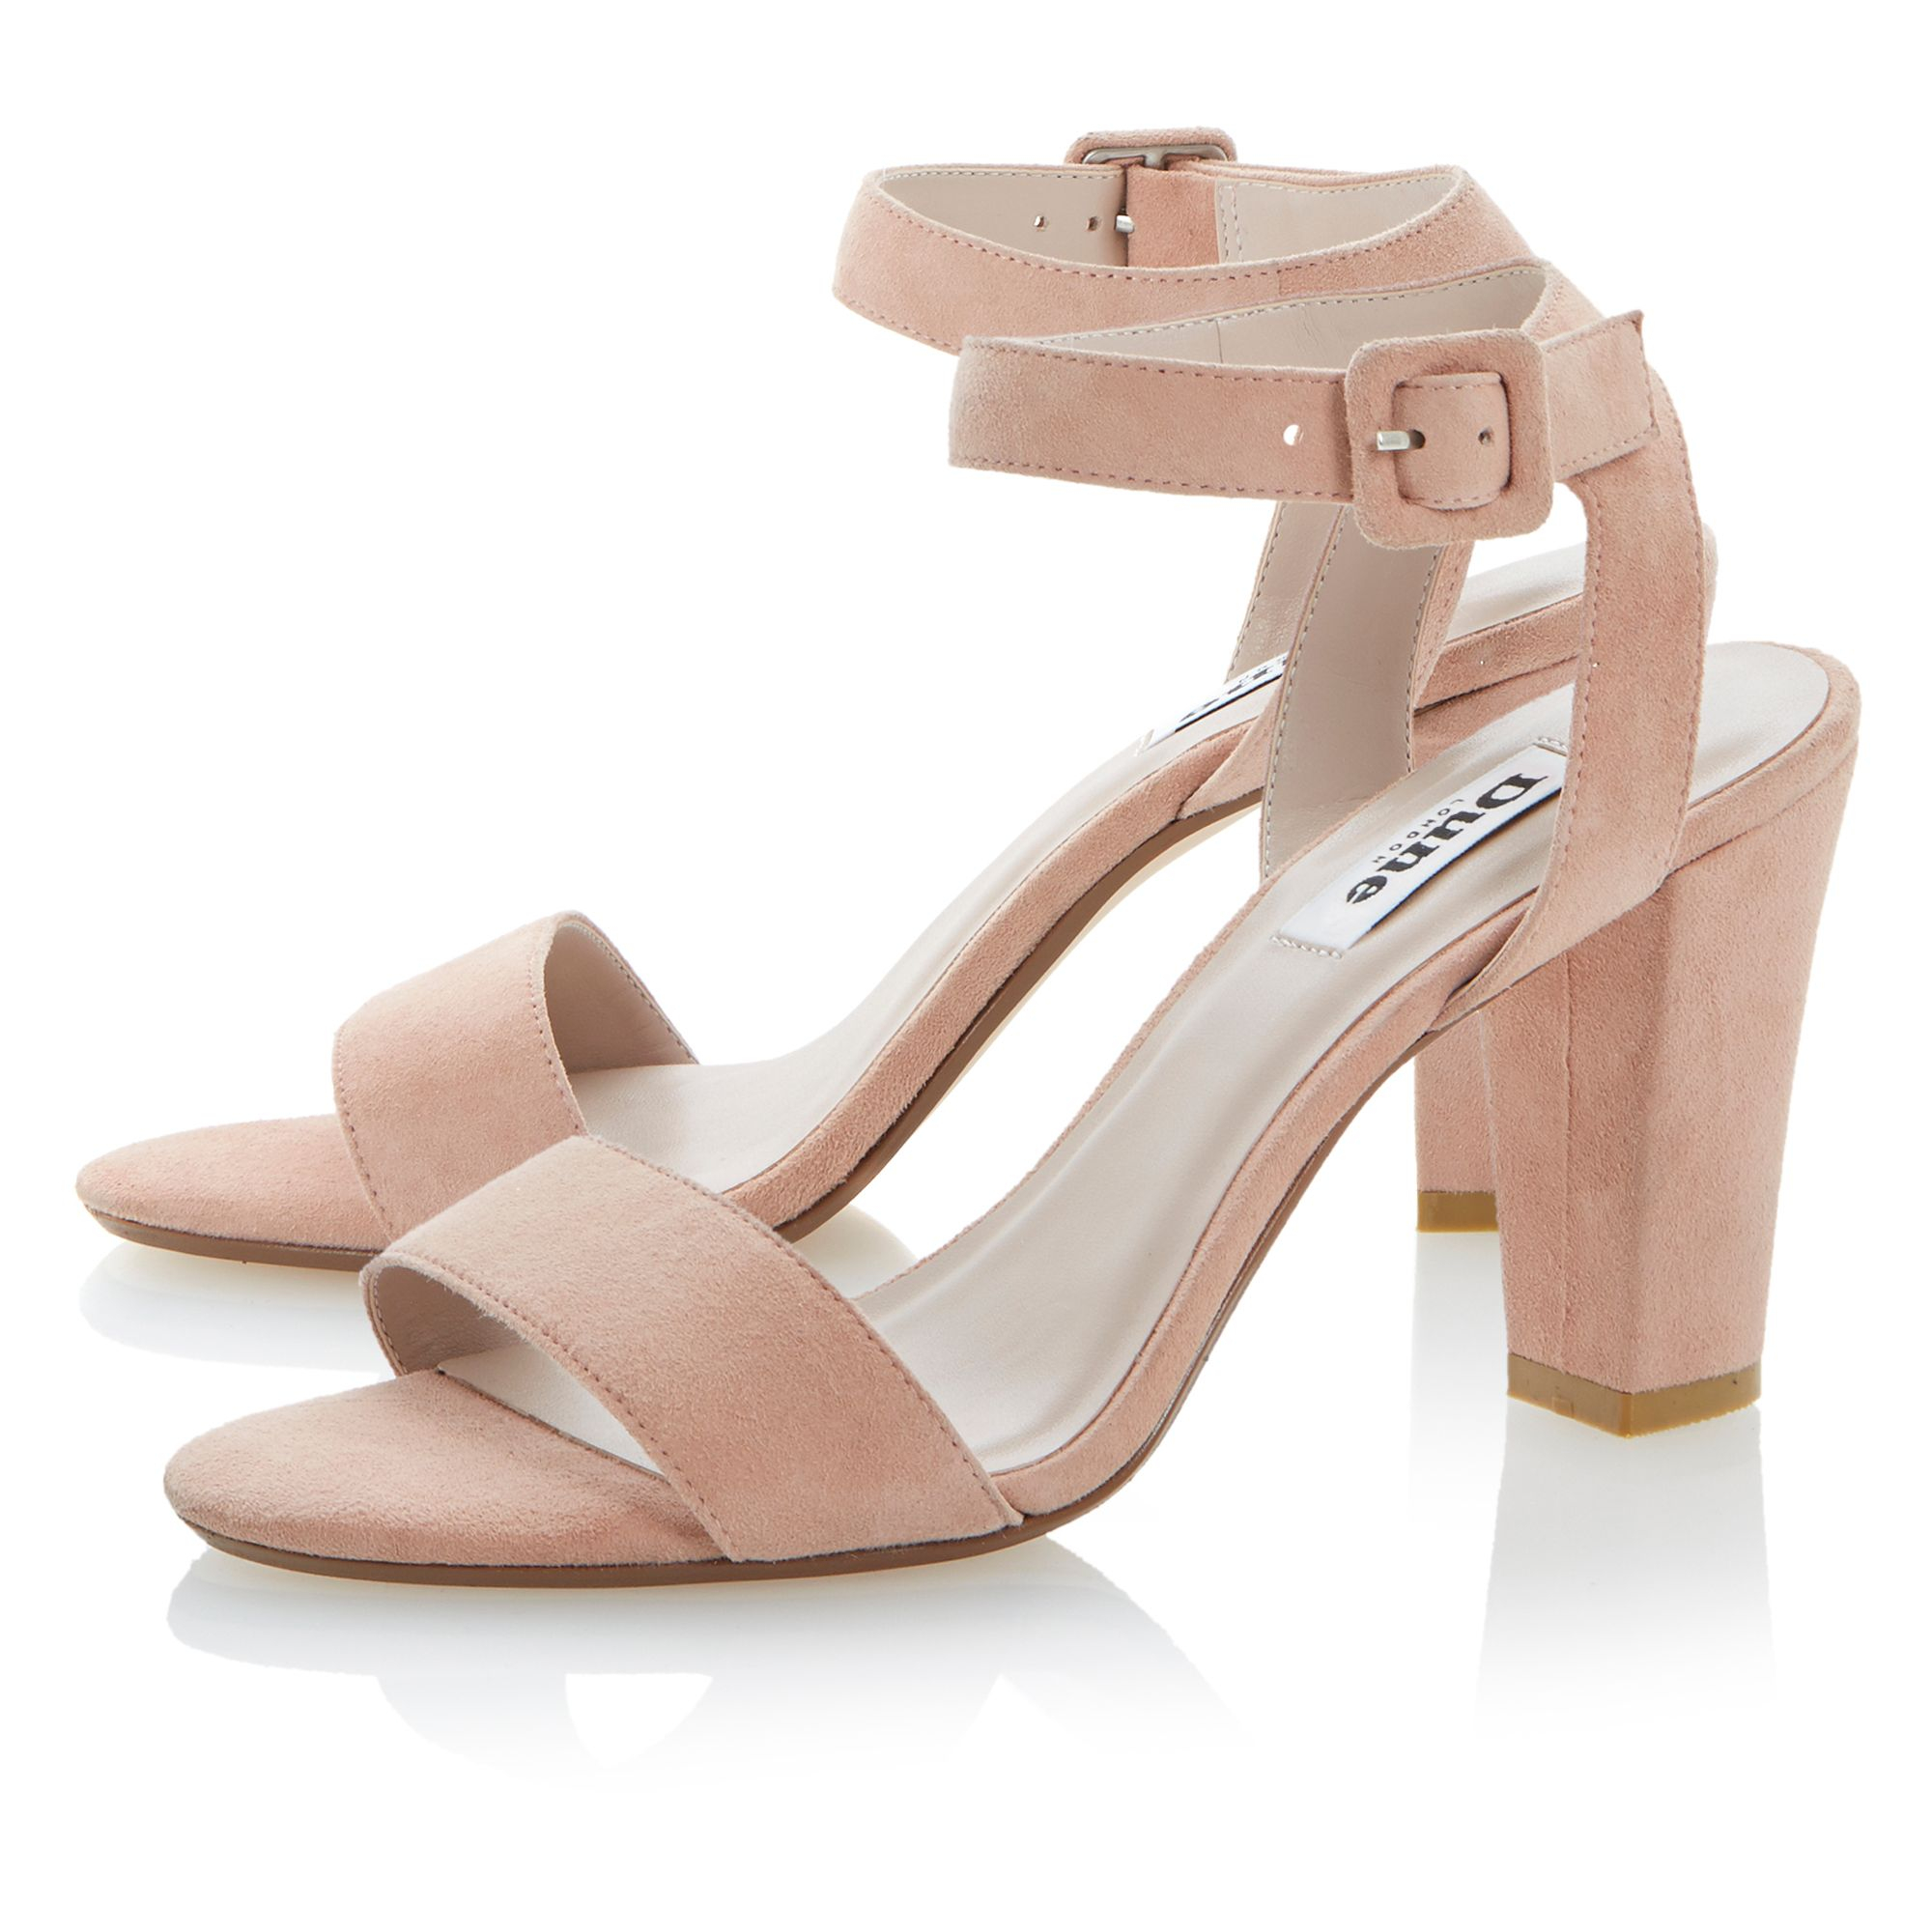 3 Ankle Strap Heels - Is Heel